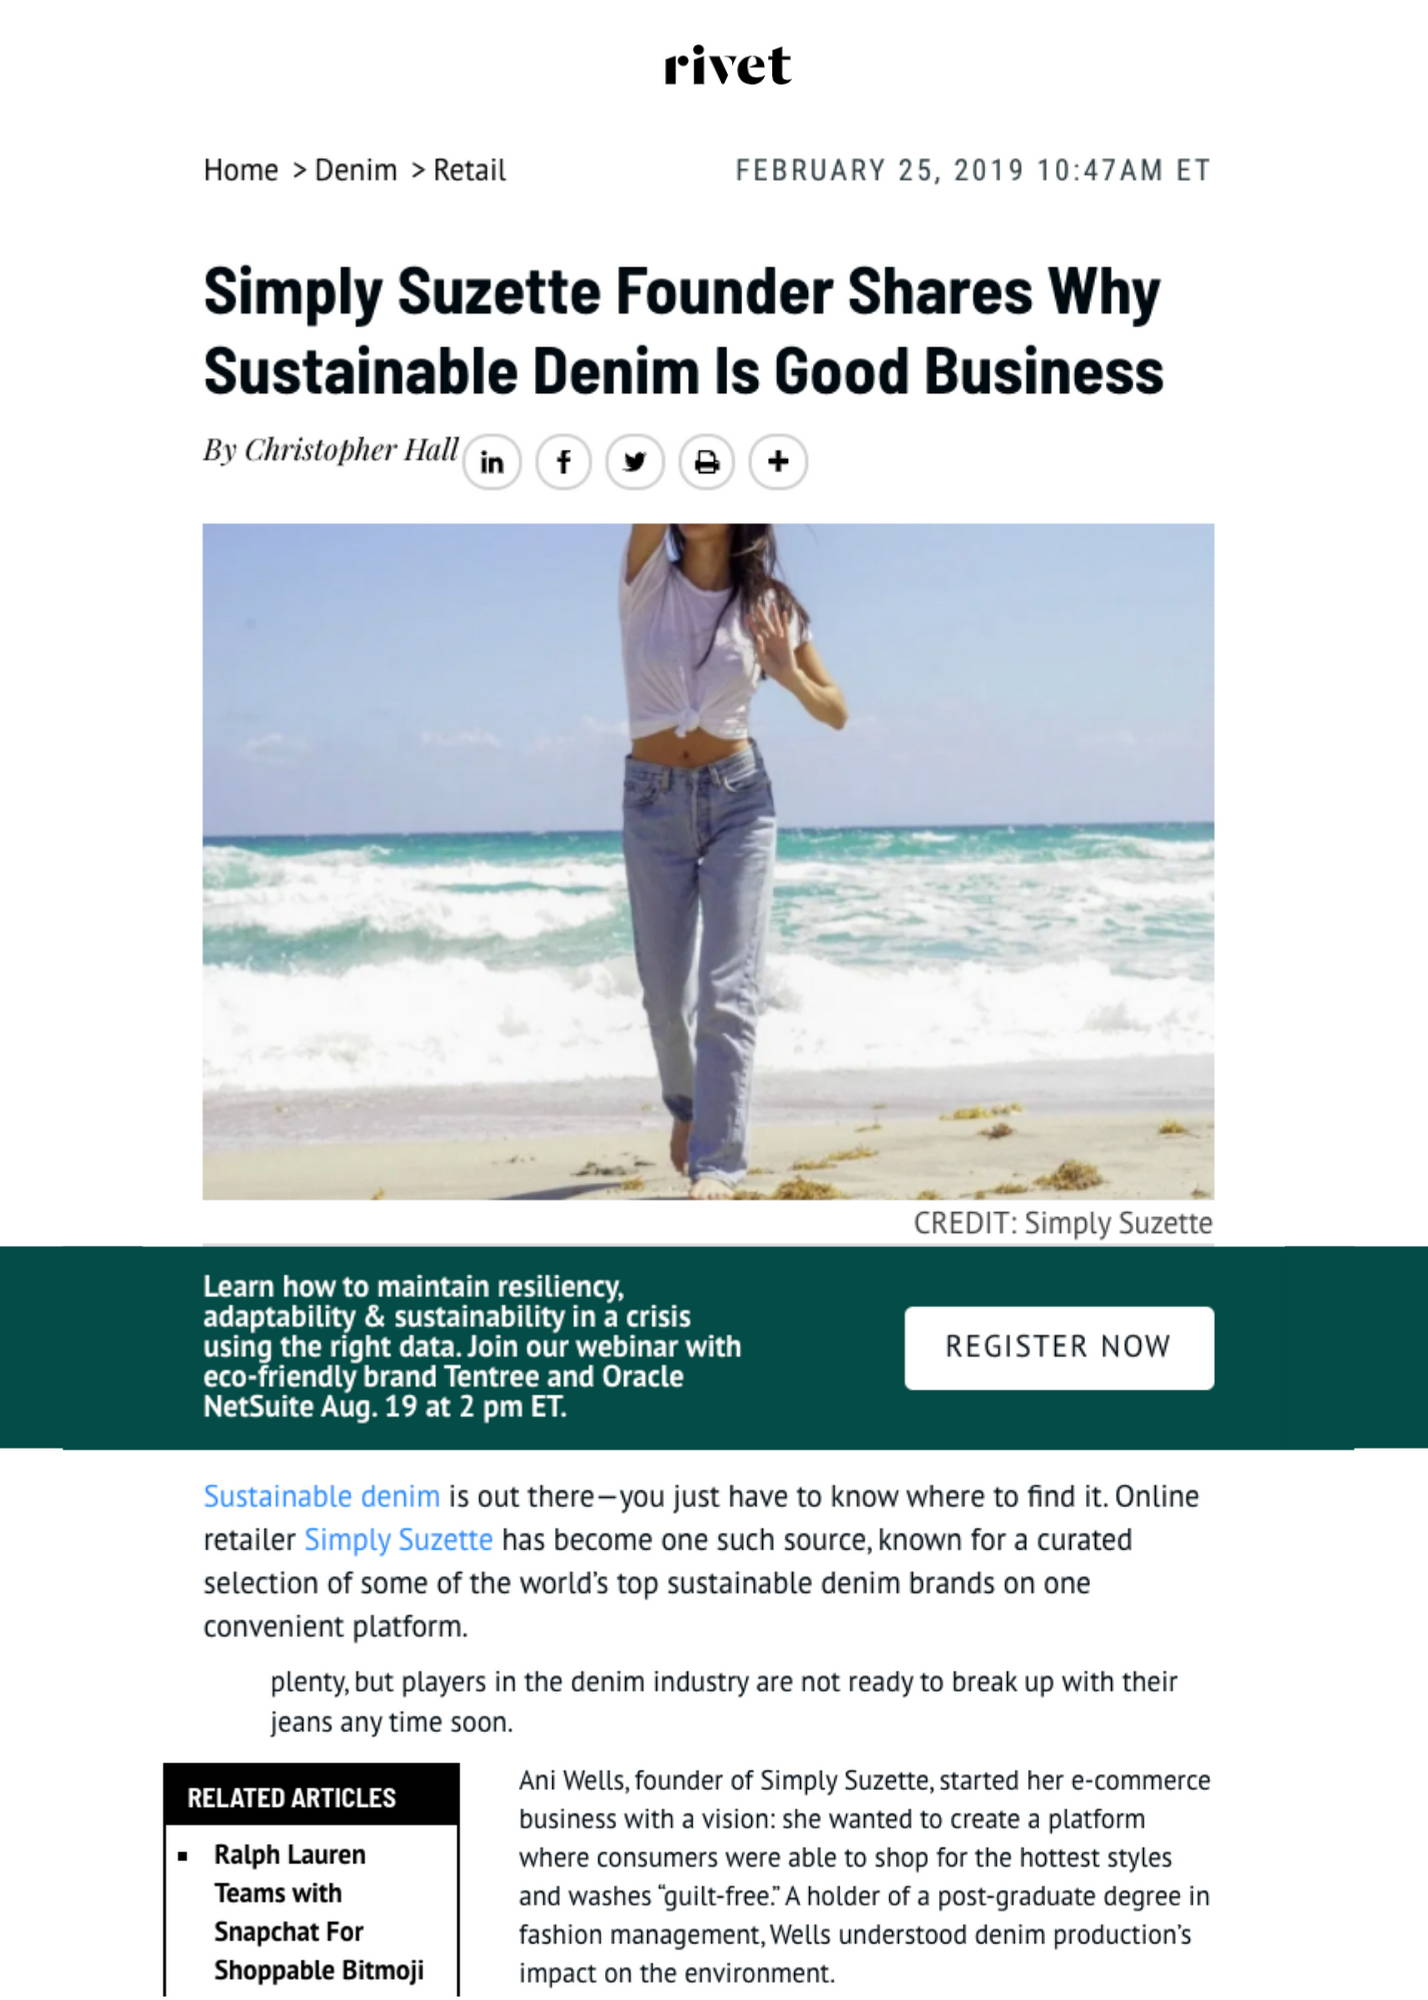 Simply Suzette Founder Shares Why Sustainable Denim Is Good Business Article